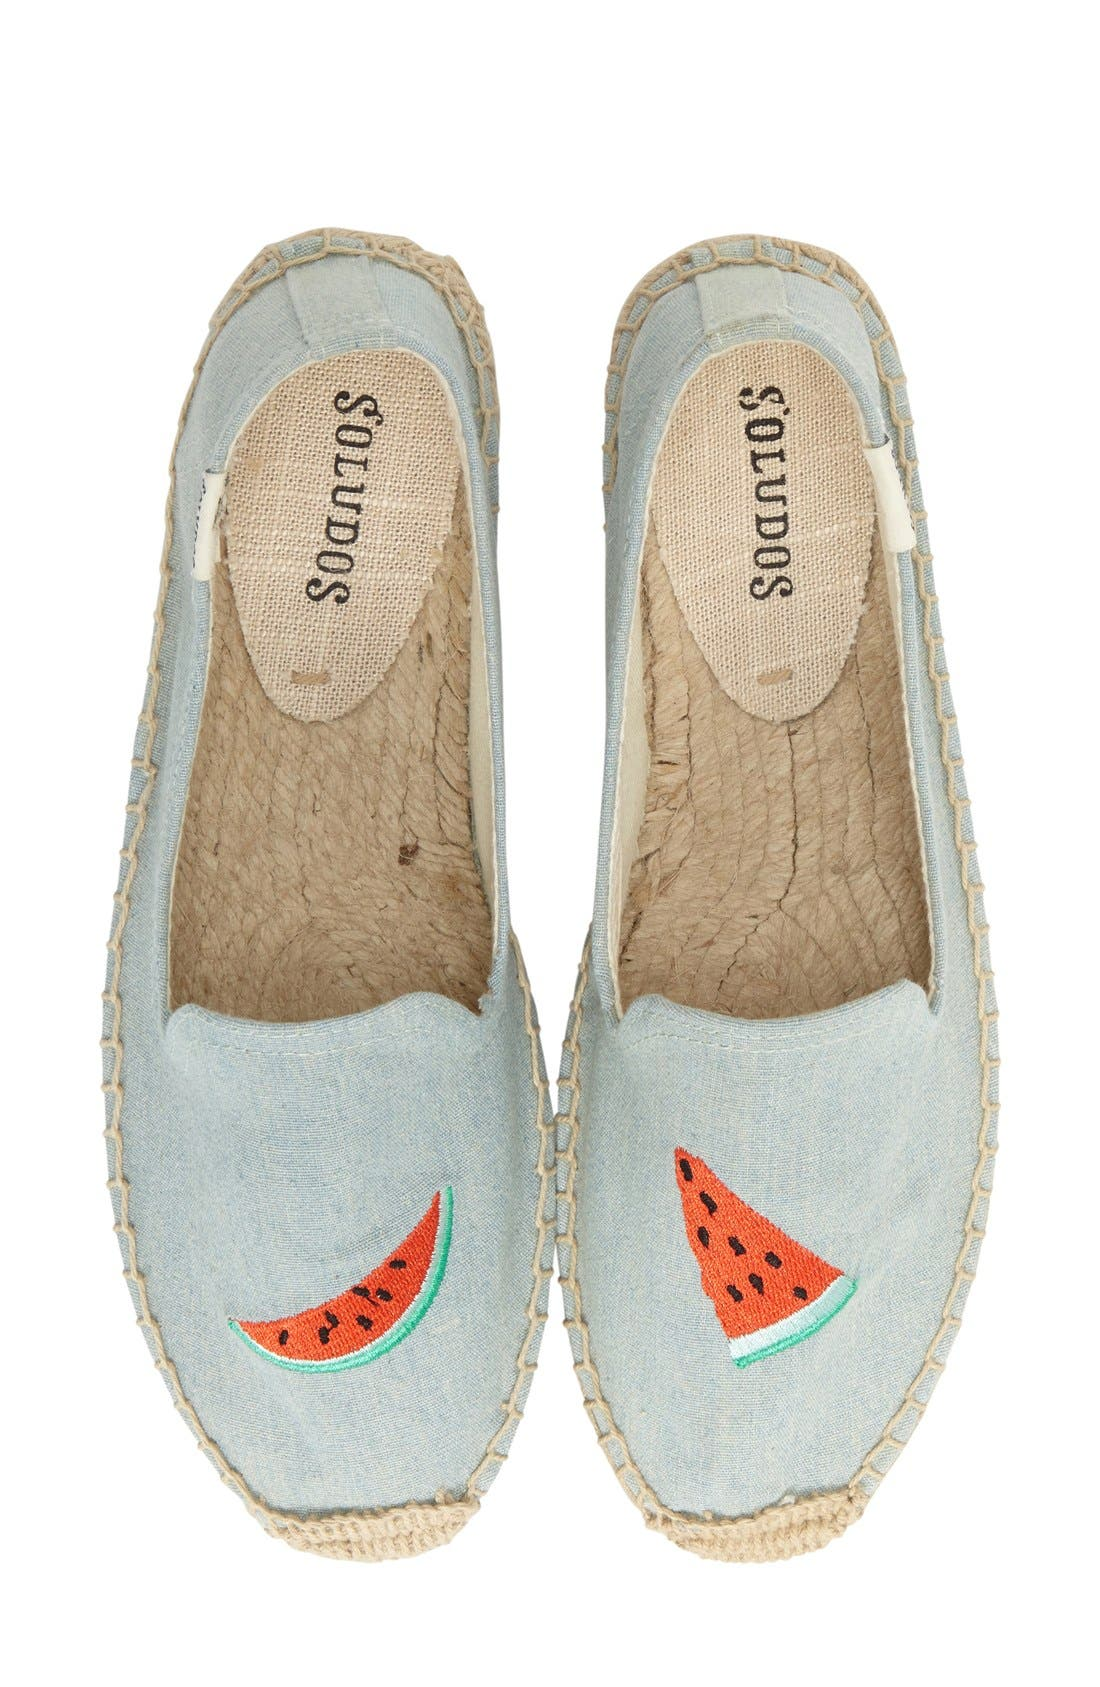 SOLUDOS,                             'Watermelon' Embroidered Flat,                             Alternate thumbnail 5, color,                             420